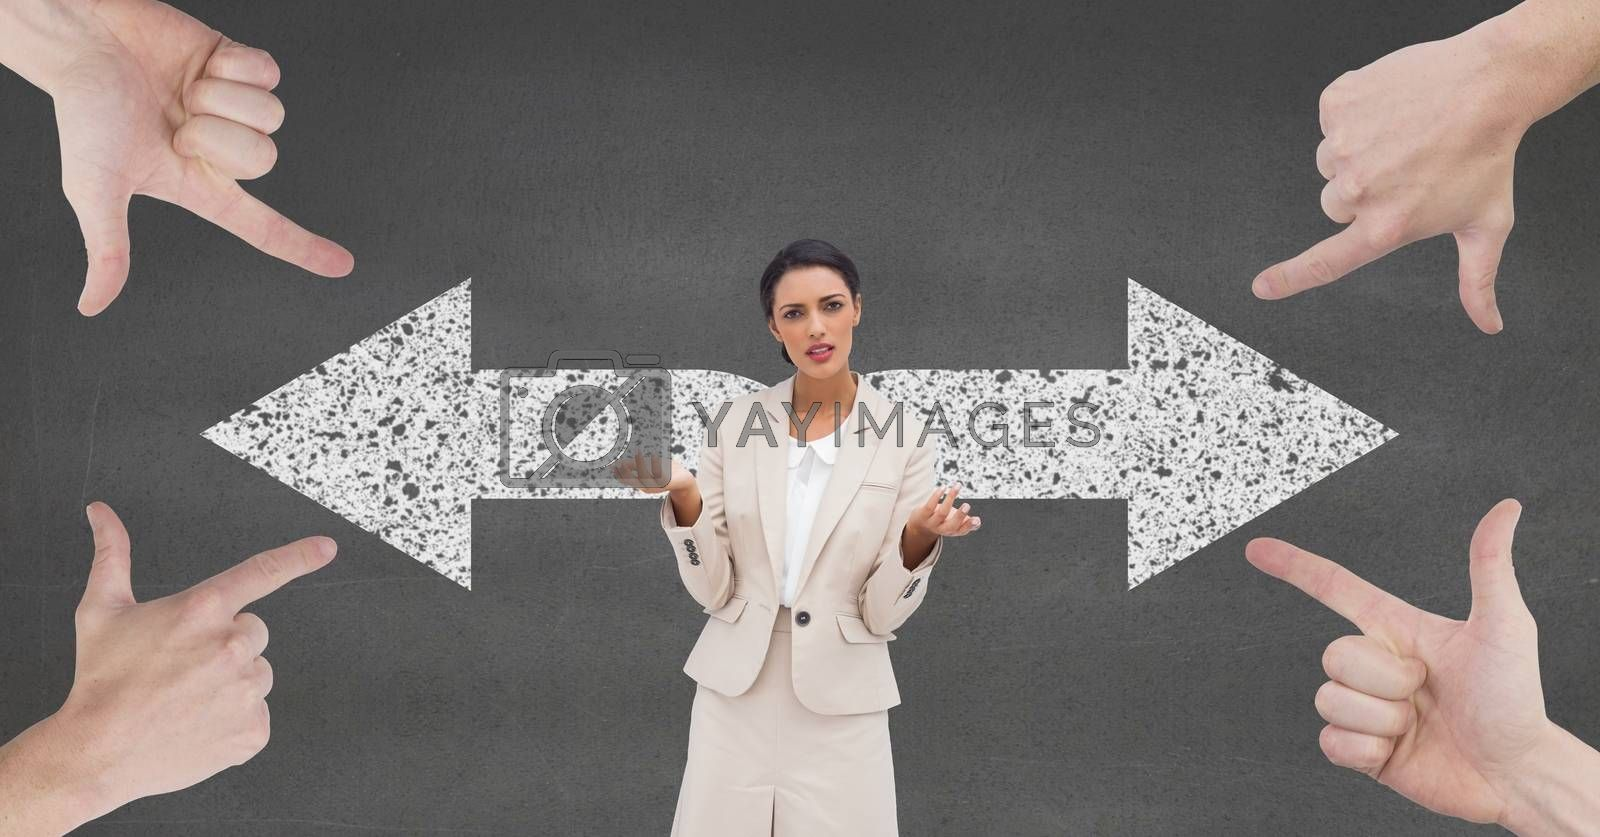 Hands pointing at confused business woman against grey background with arrows by Wavebreakmedia